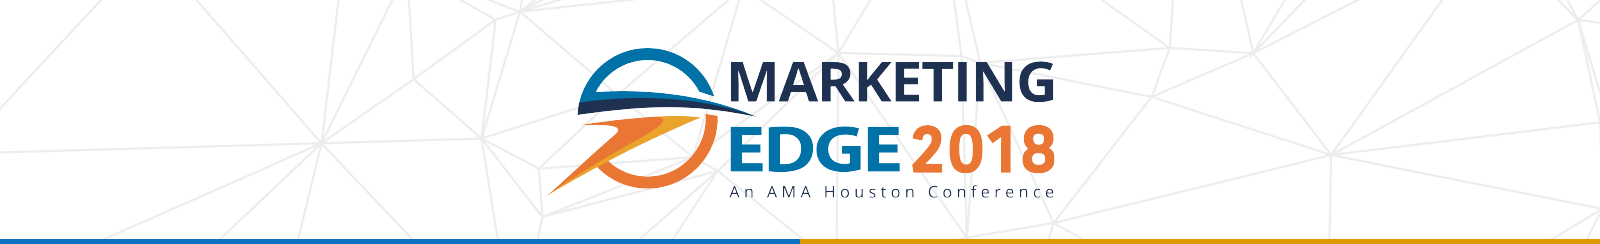 Marketing Edge 2018